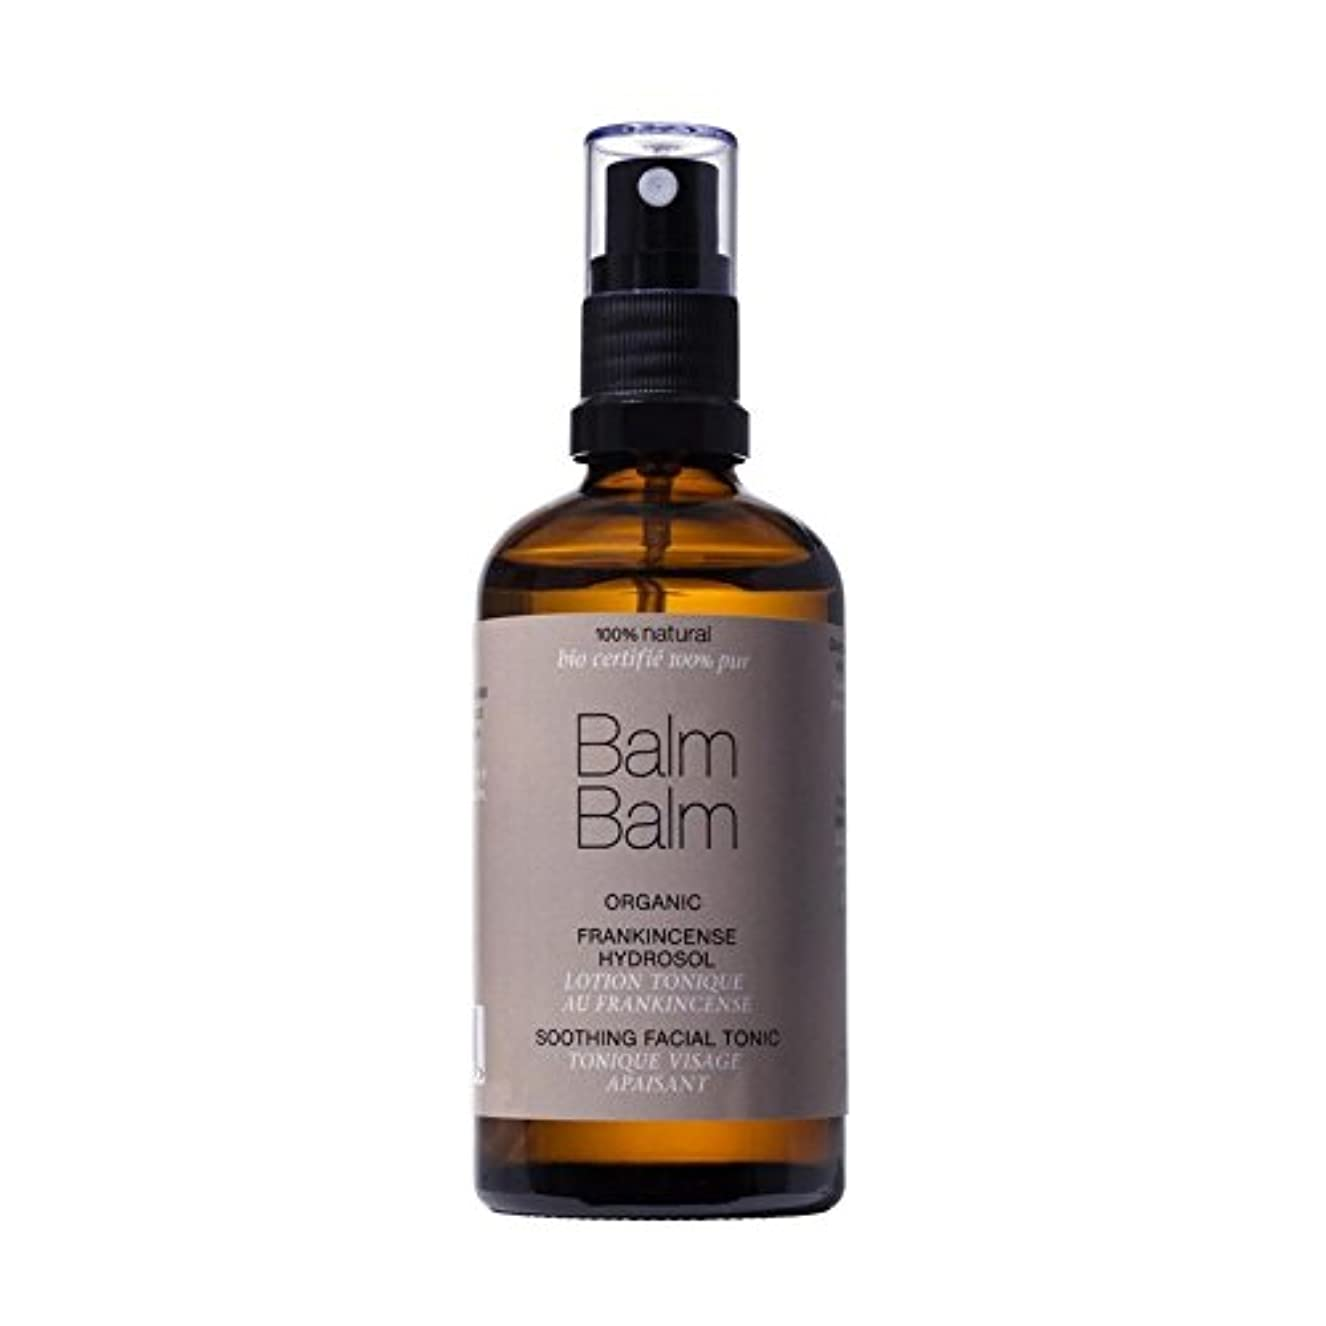 Balm Balm Frankincense Organic Hydrosol Soothing Facial Tonic 100ml (Pack of 6) - バームバーム乳香有機ハイドロゾルなだめるような顔のトニック...